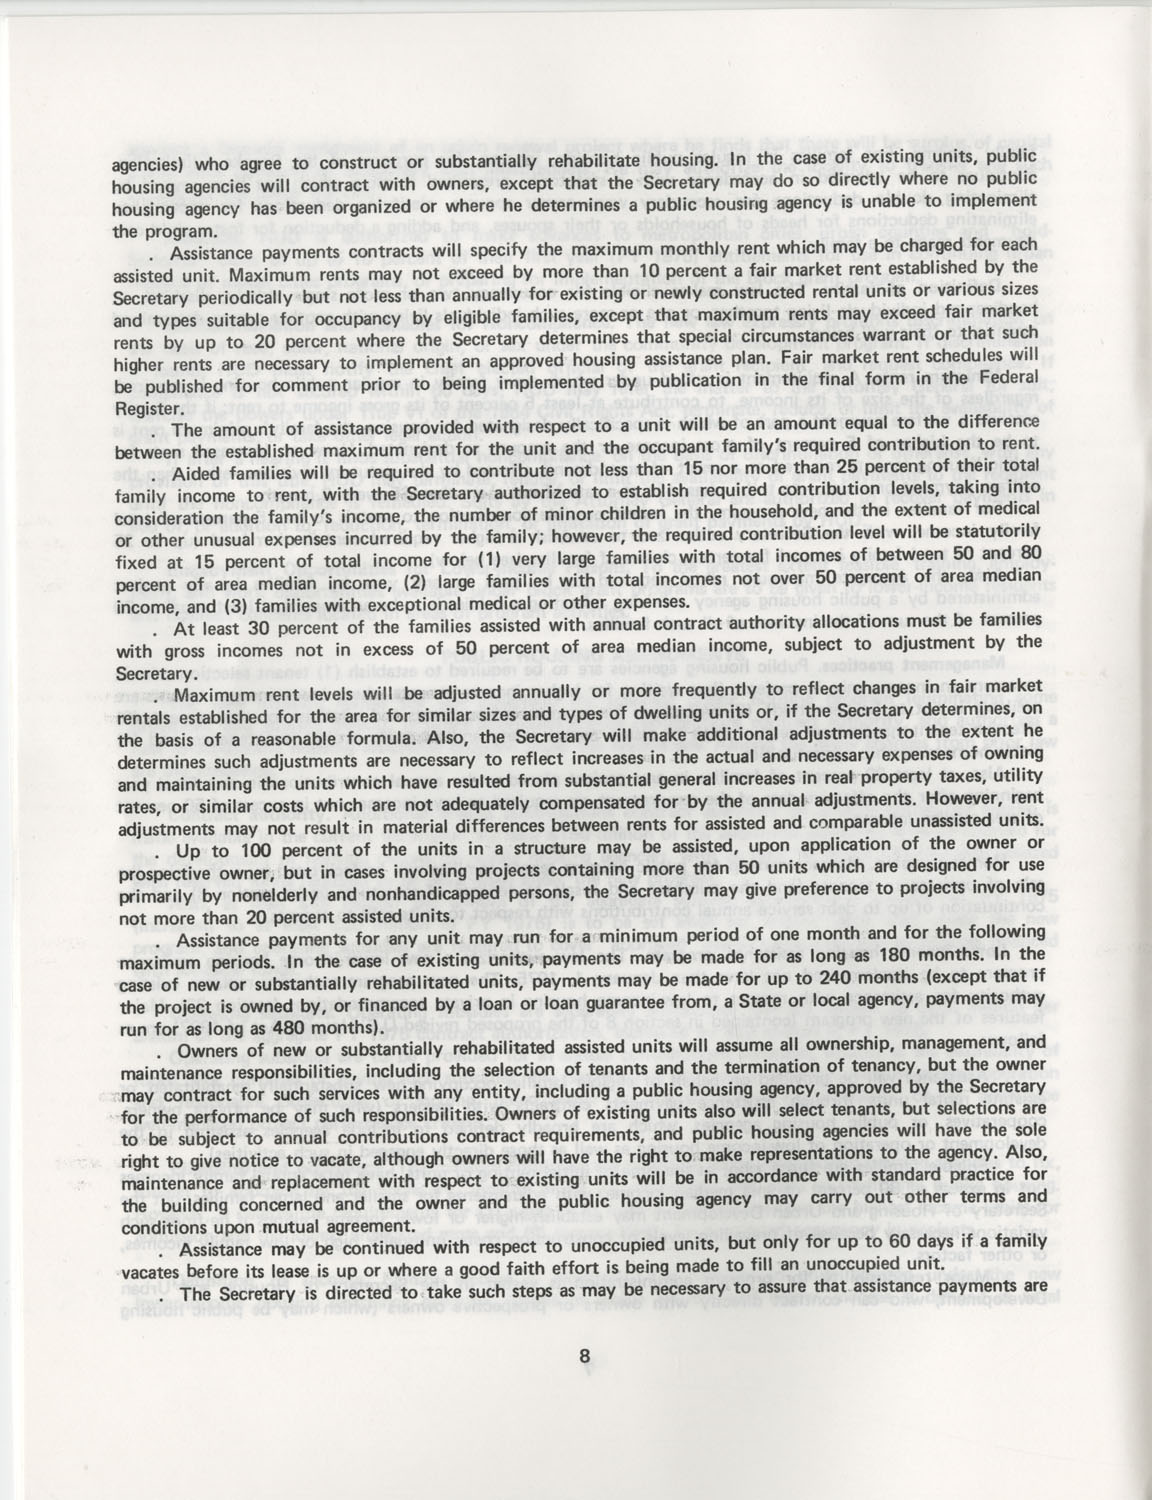 Summary of the Housing and Community Development Act of 1974, Page 8